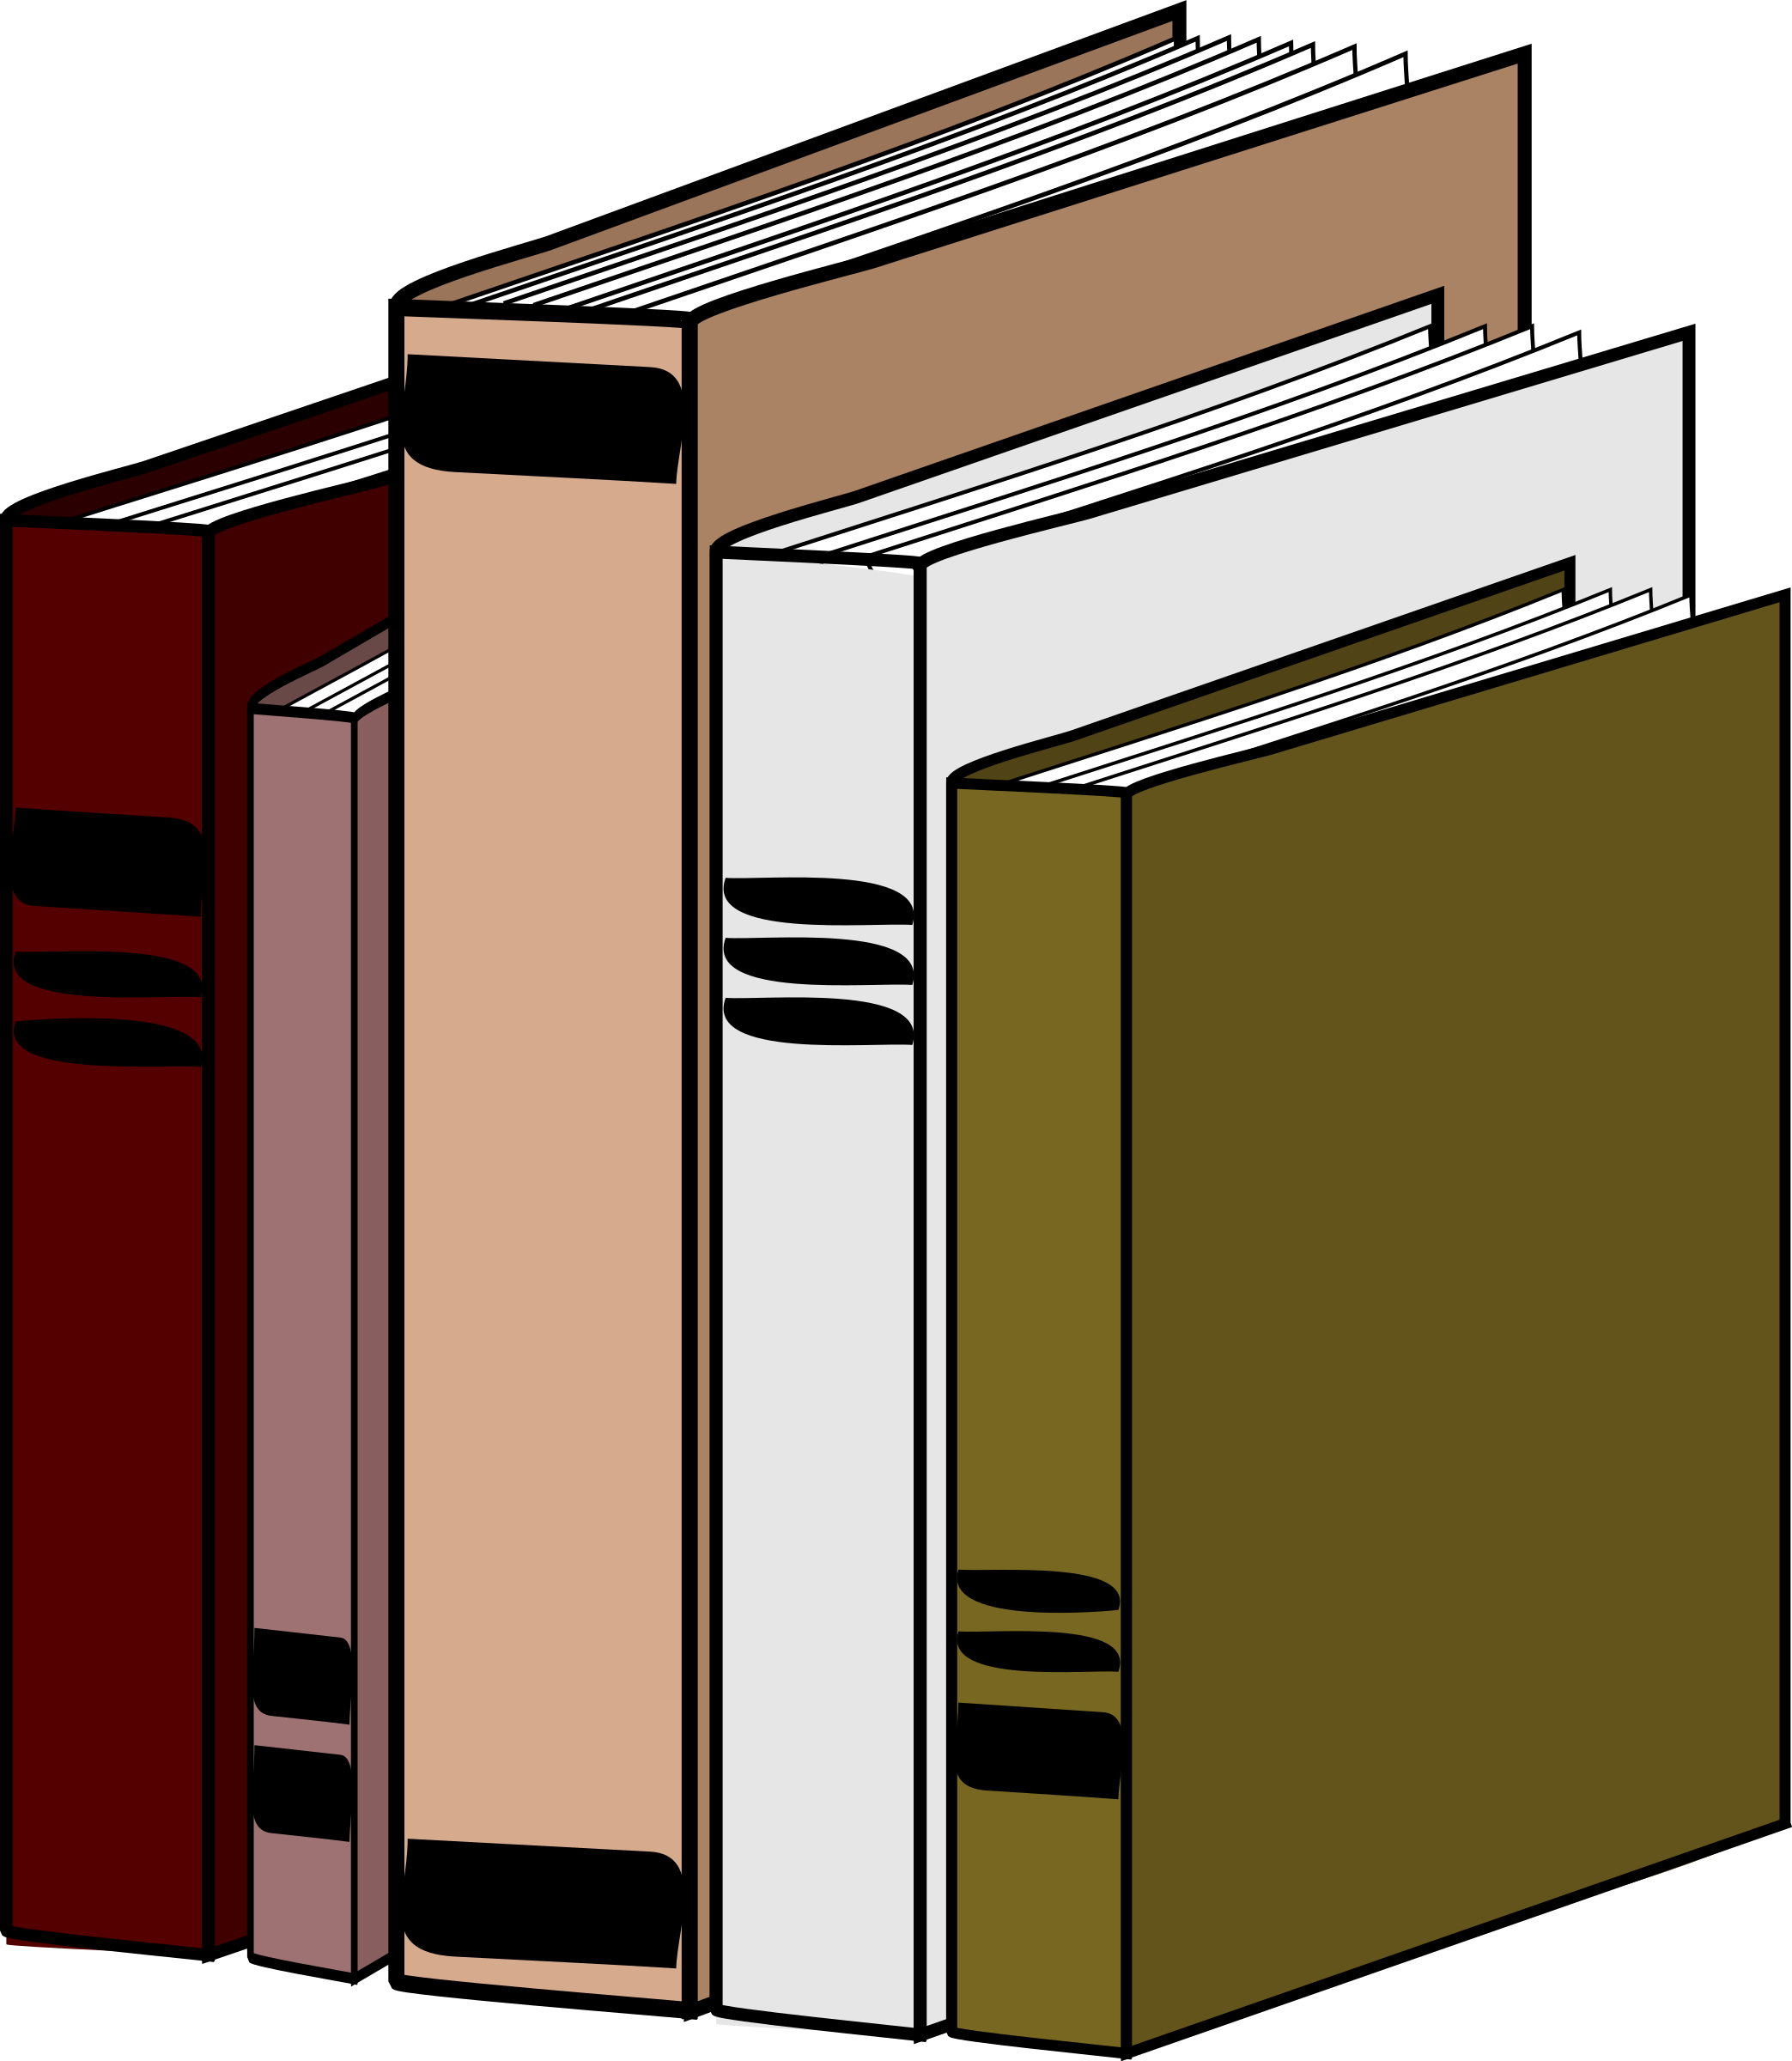 Book on shelf clipart vector royalty free library Clipart - Books vector royalty free library